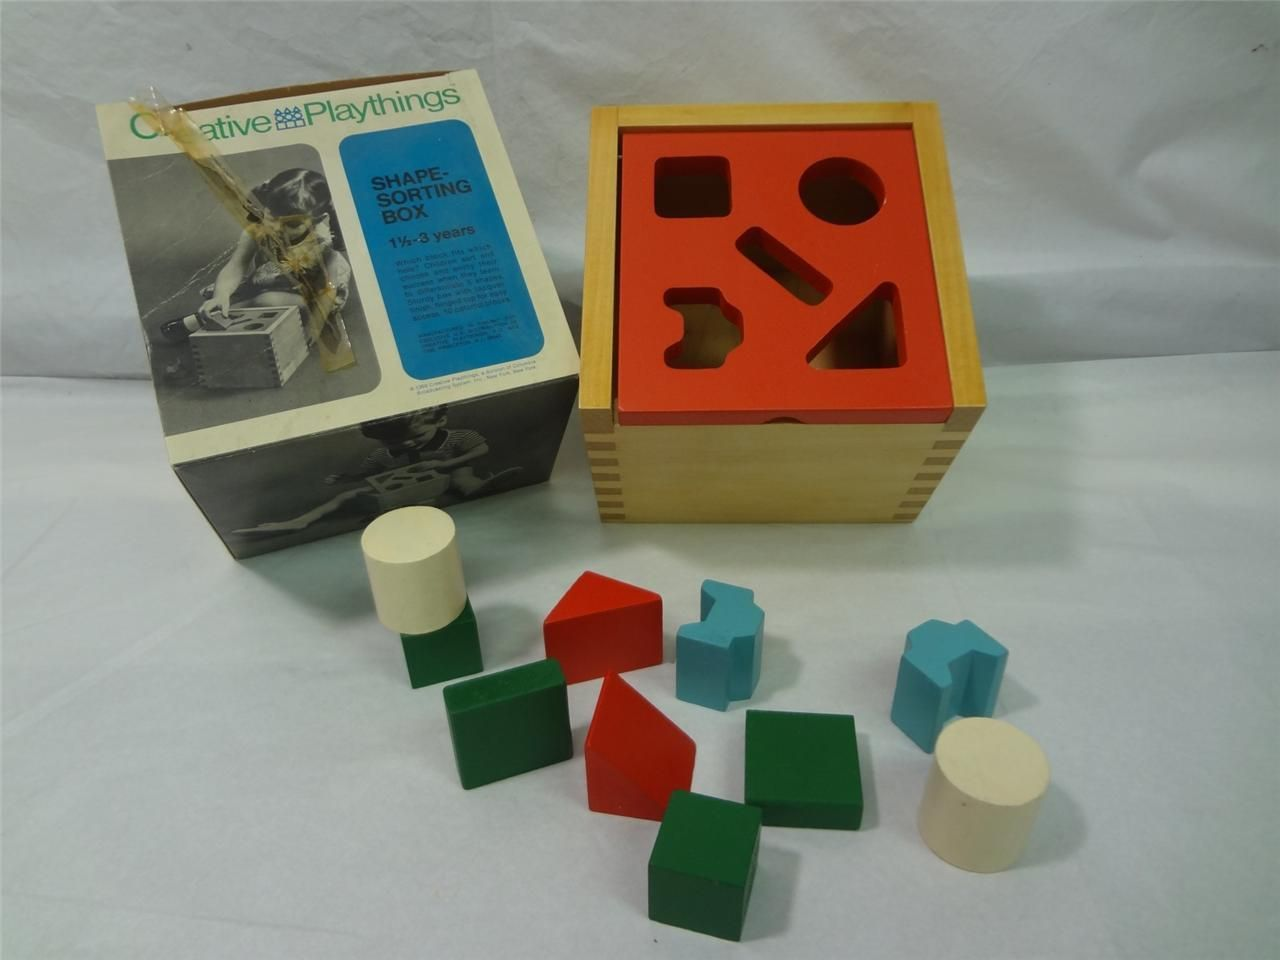 New NOS 1969 Creative Playthings Child Wooden Shape Sorting Box Q949 1 3 Years | eBay